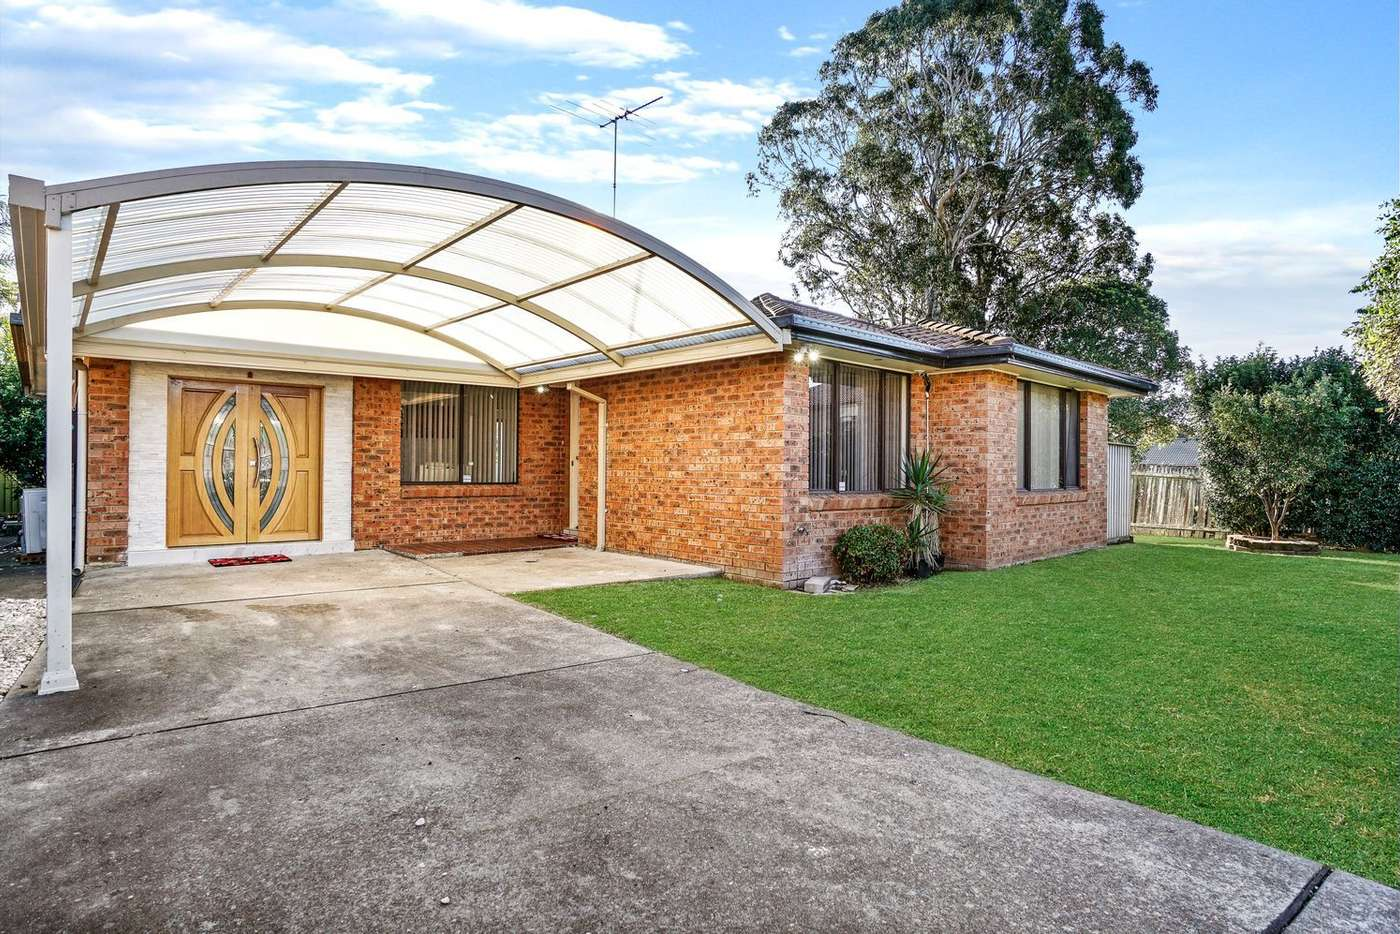 Main view of Homely house listing, 24A Lamonerie Street, Toongabbie NSW 2146